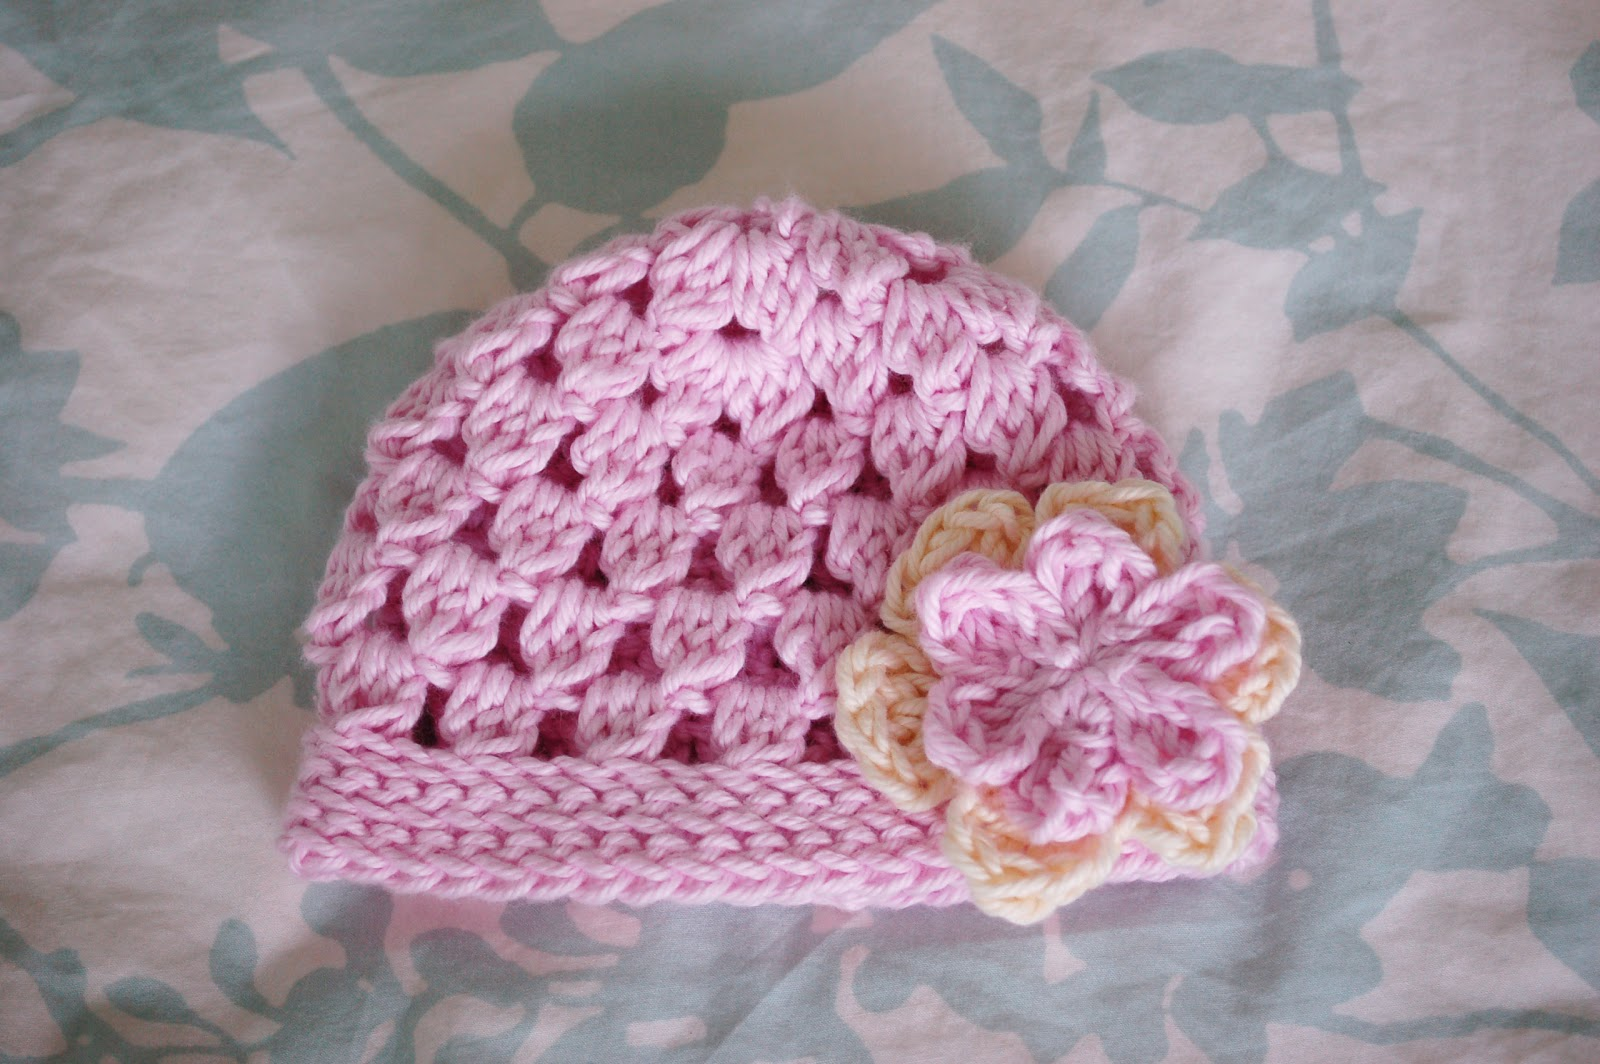 Crochet Baby Beanie Pattern Easy : Tutorial Treasures: Free Crochet Beanie Pattern